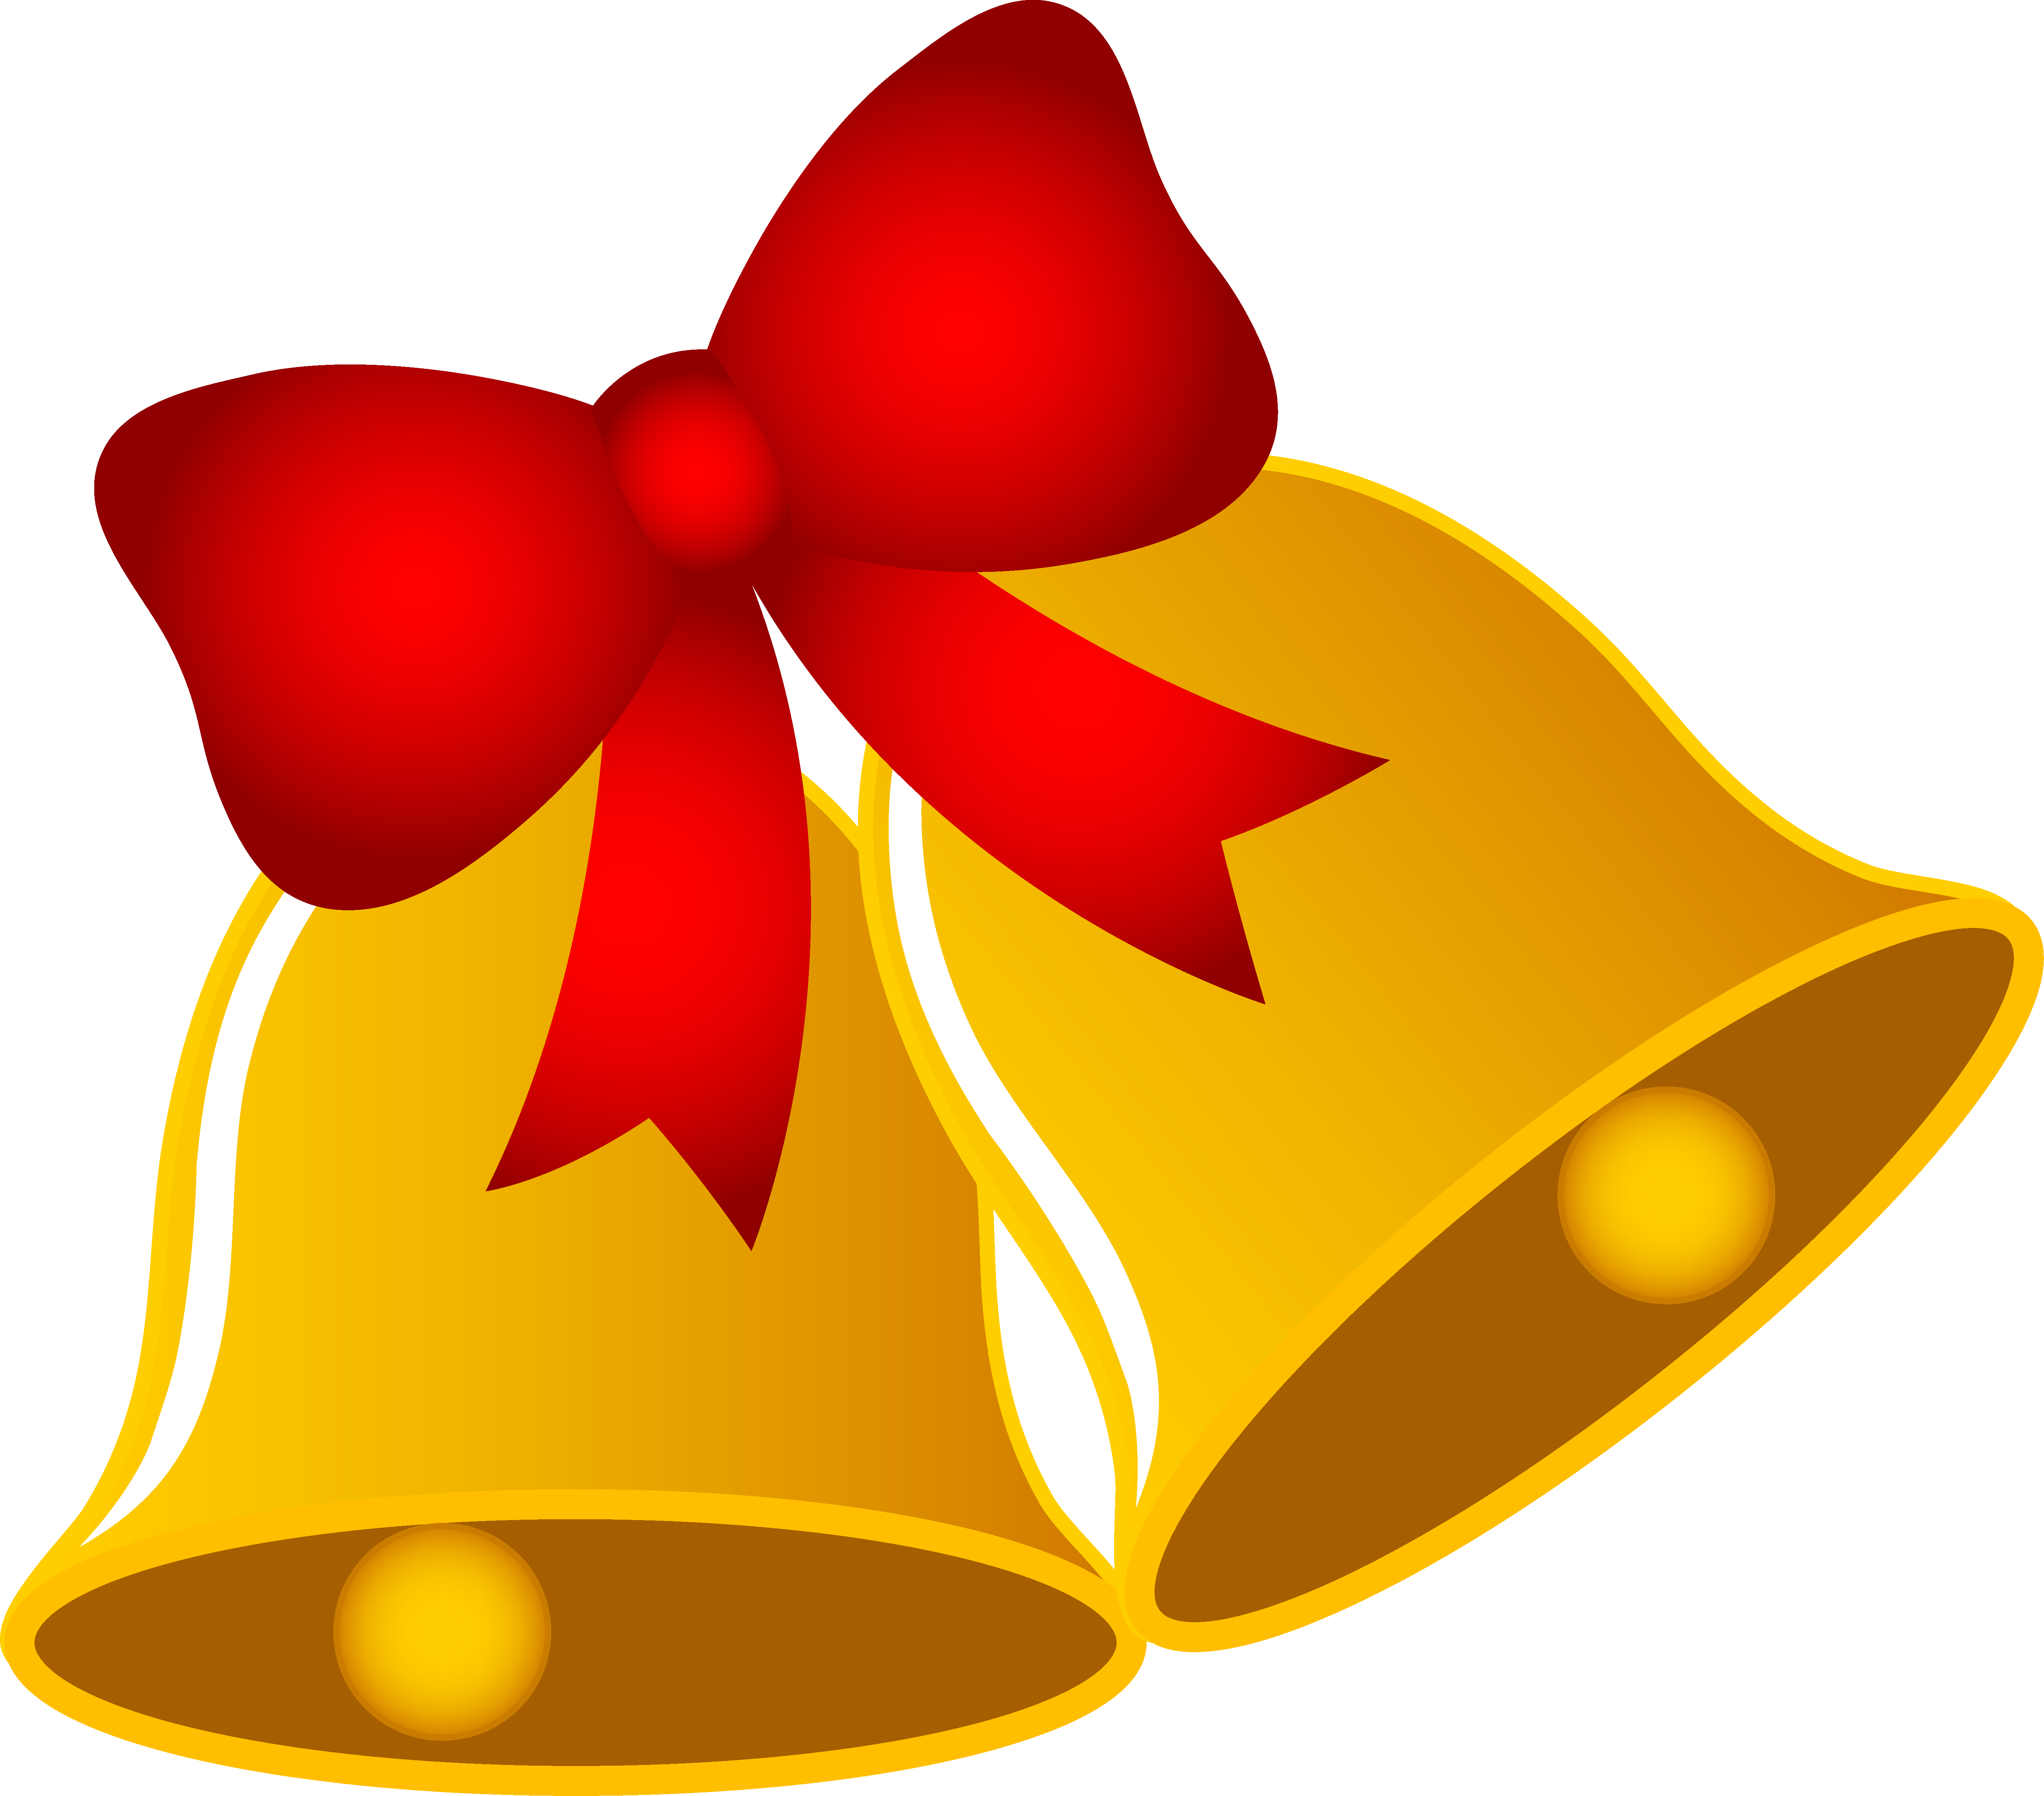 Gold Christmas Bow Clipart .-Gold Christmas Bow Clipart .-12